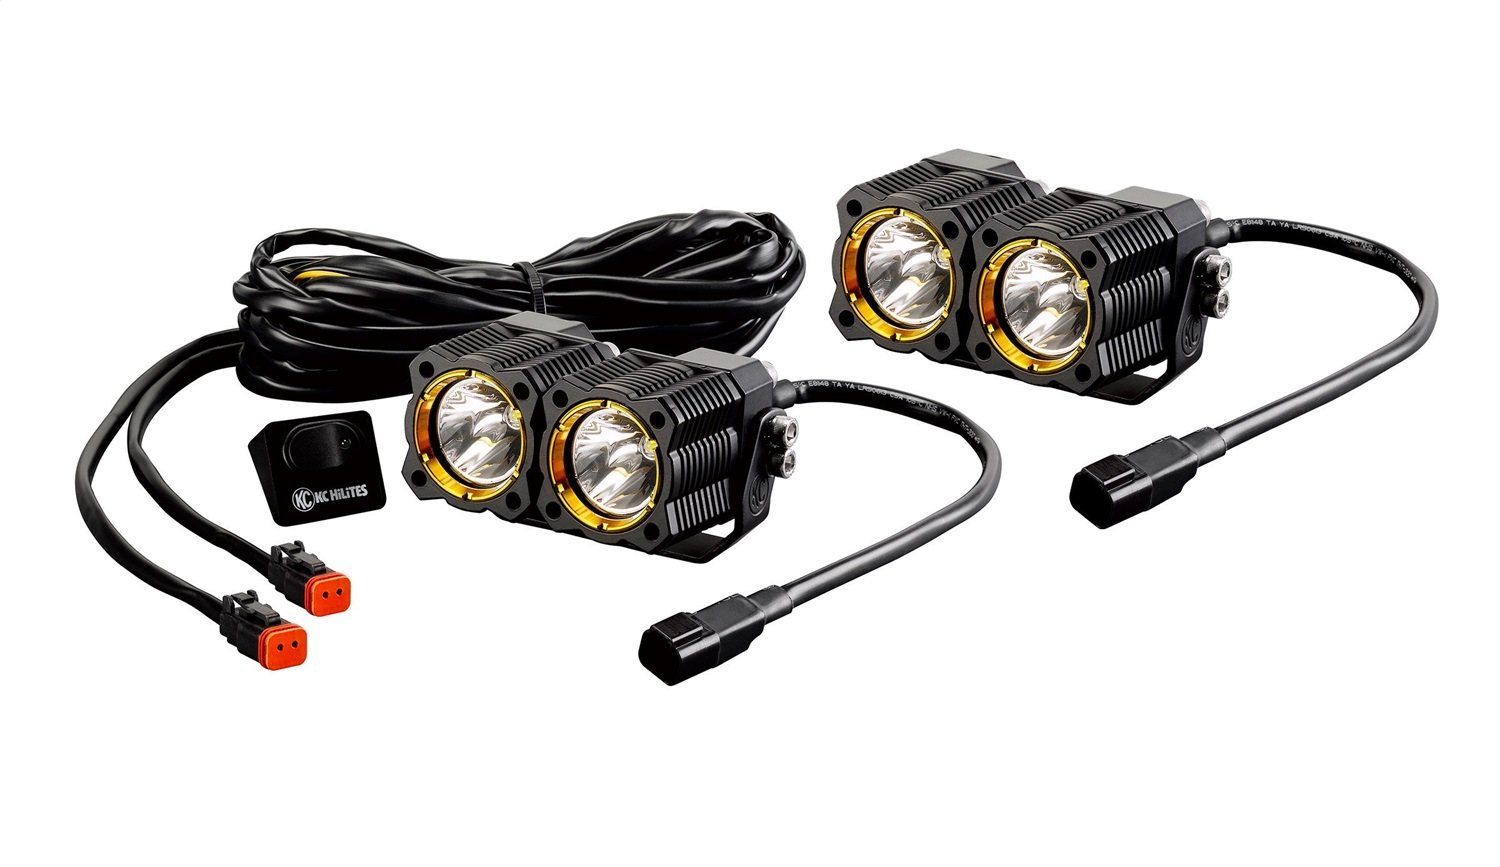 KC HiLiTES 270 FLEX LED Single Spot Lighting System -Pair (Includes Switch and Wiring Harness with Waterproof Connectors)